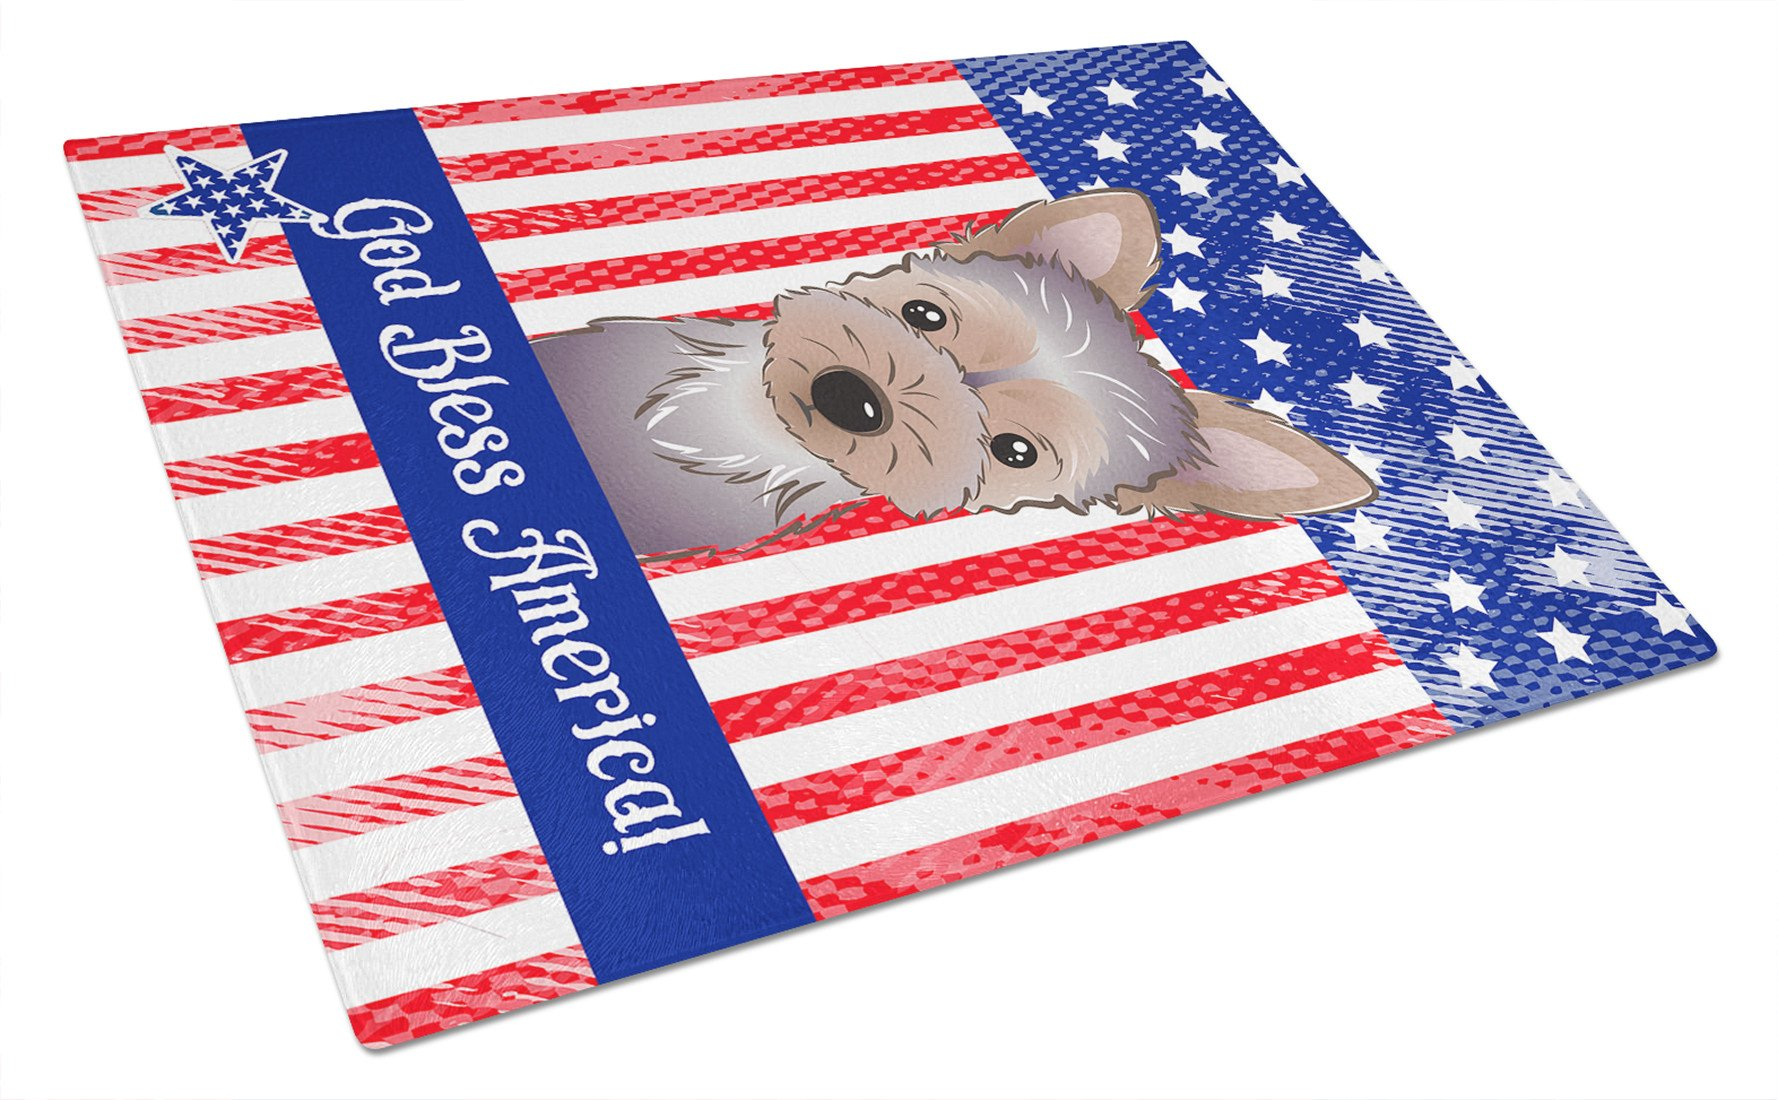 God Bless American Flag with Yorkie Puppy Glass Cutting Board Large BB2162LCB by Caroline's Treasures